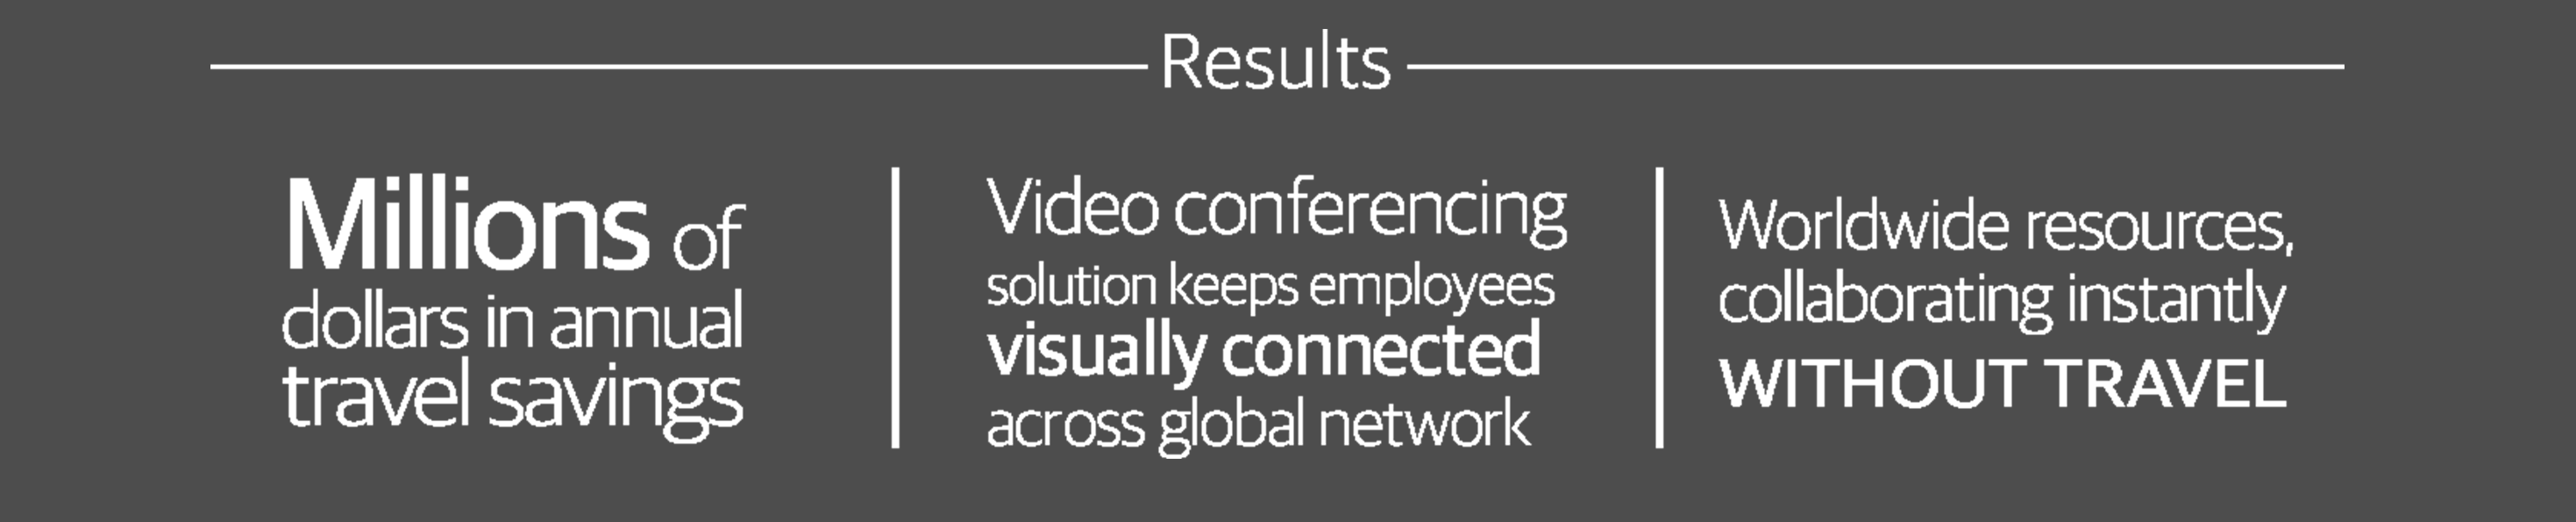 We helped our client implement a new video conferencing system